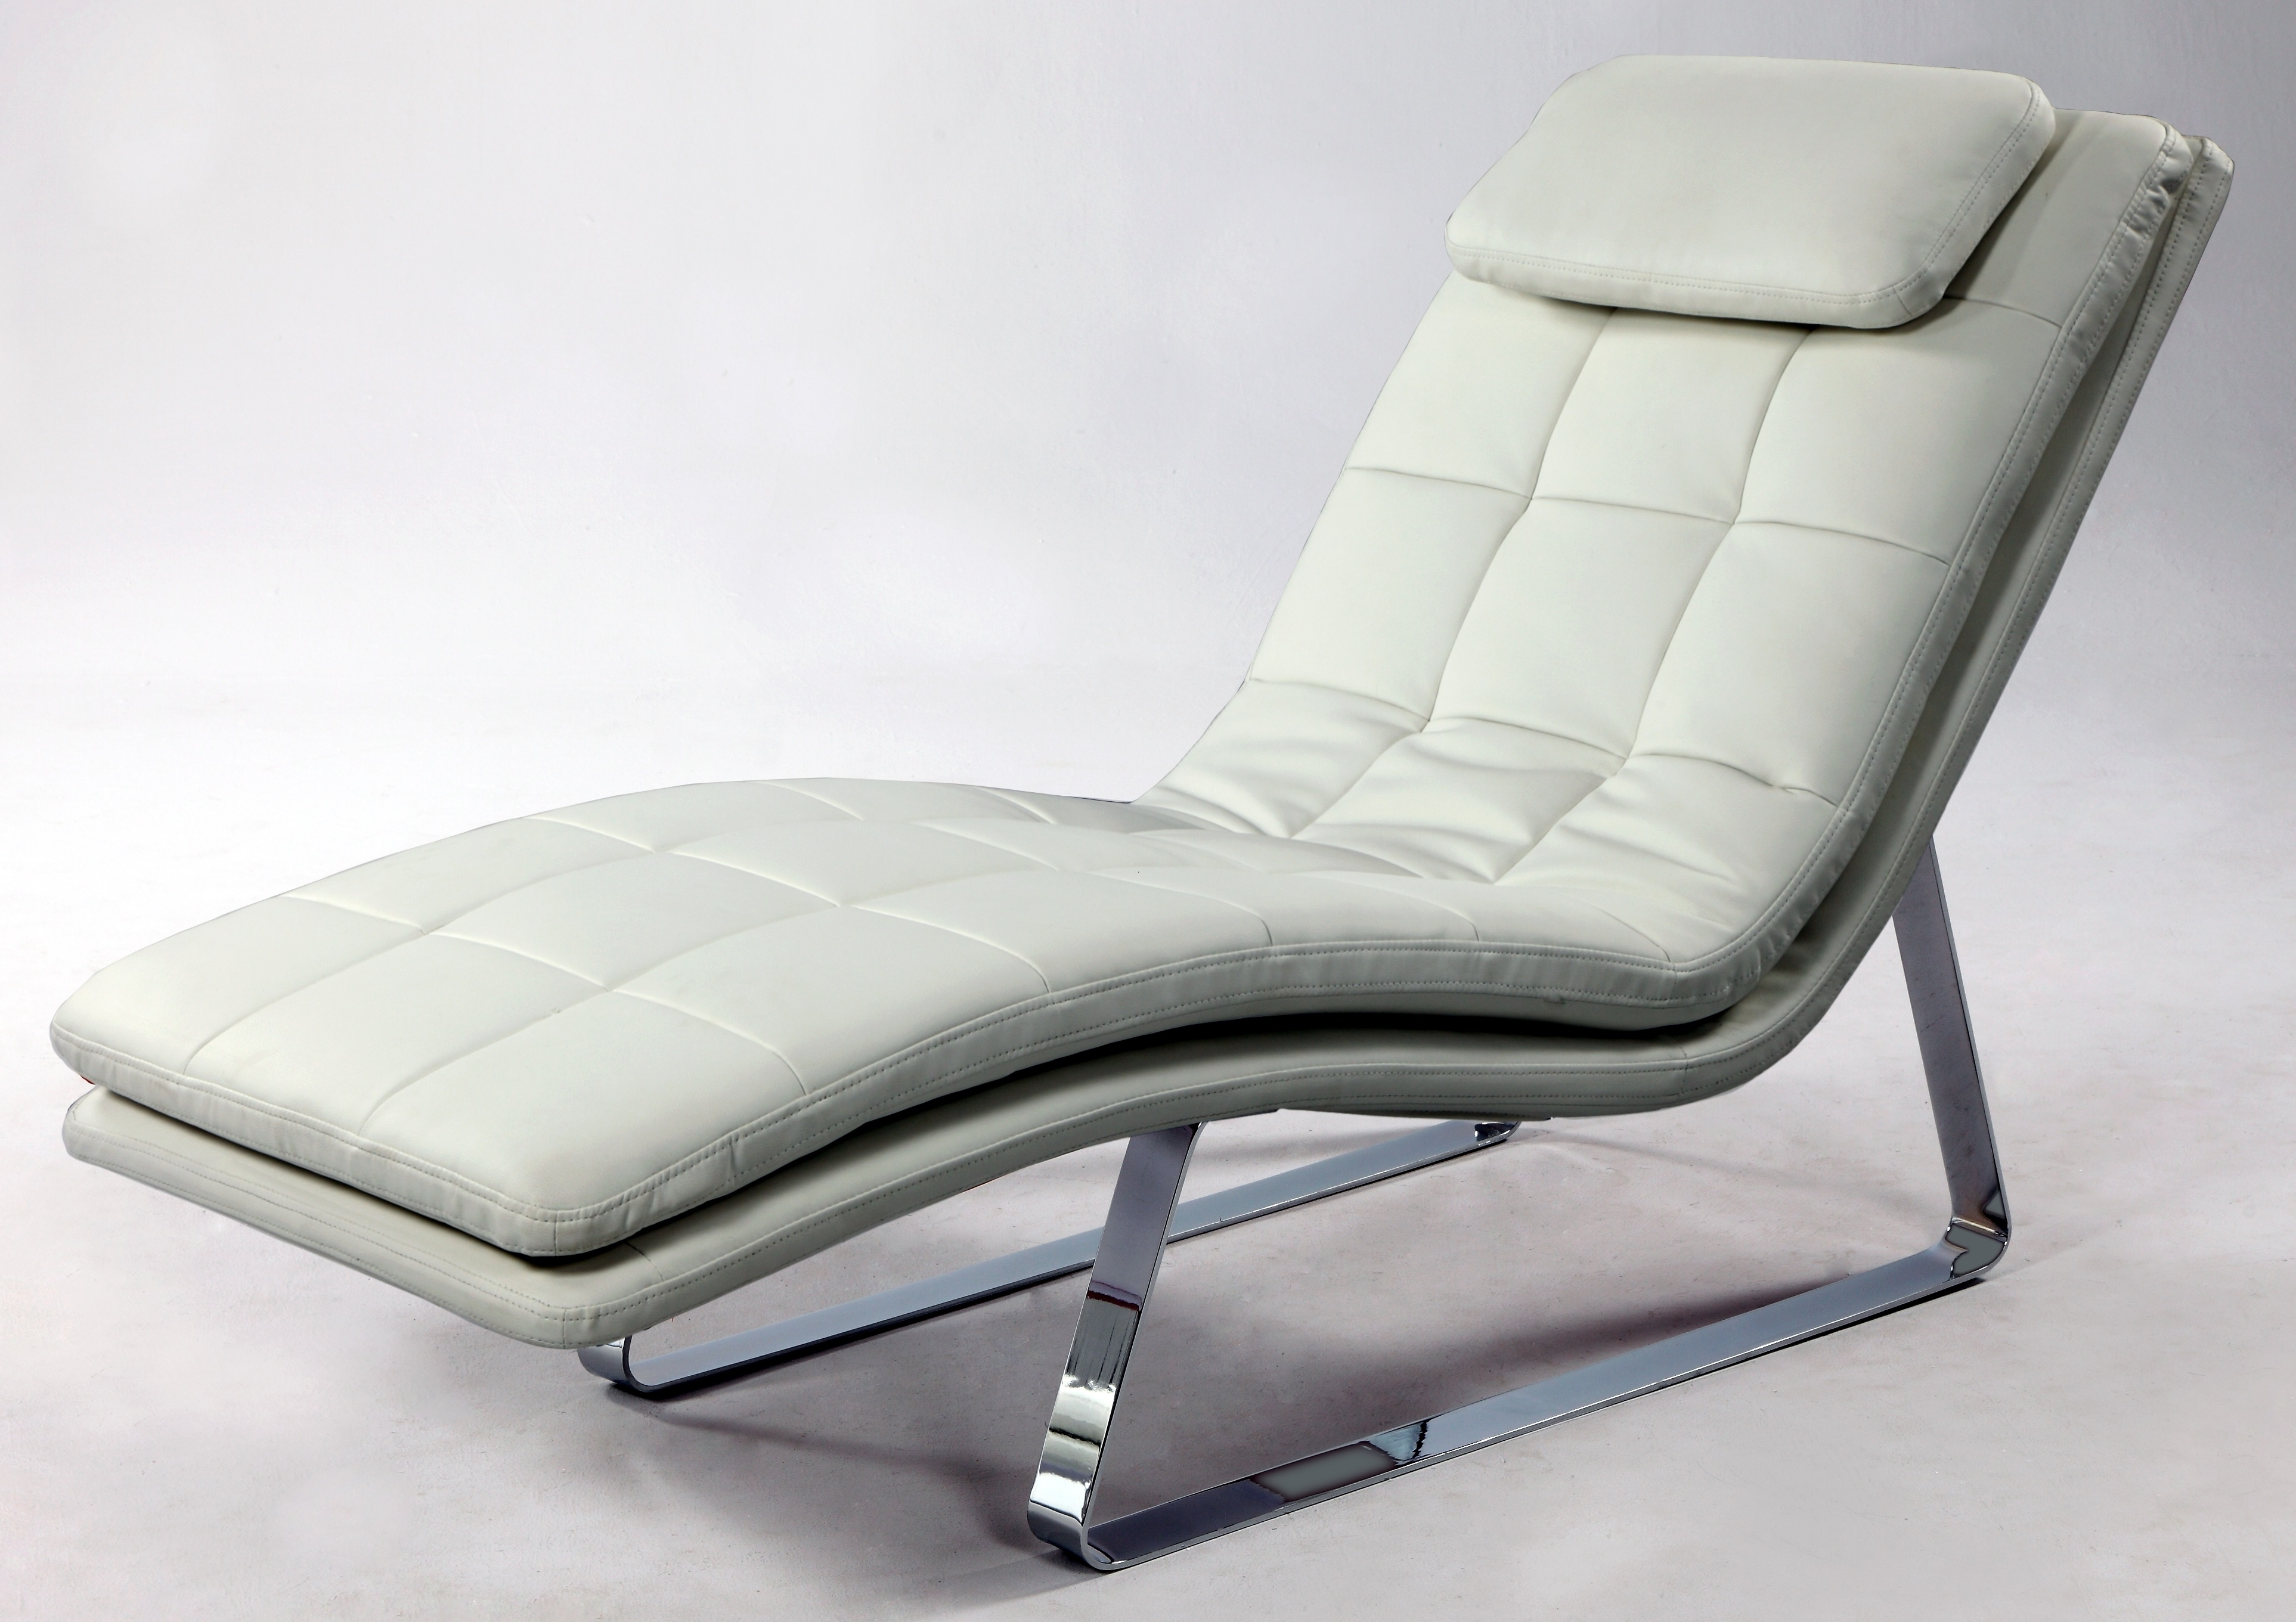 Modern Indoors Chaise Lounge Chairs In Well Known Modern Chaise Lounge Chairs Indoors • Lounge Chairs Ideas (View 5 of 15)